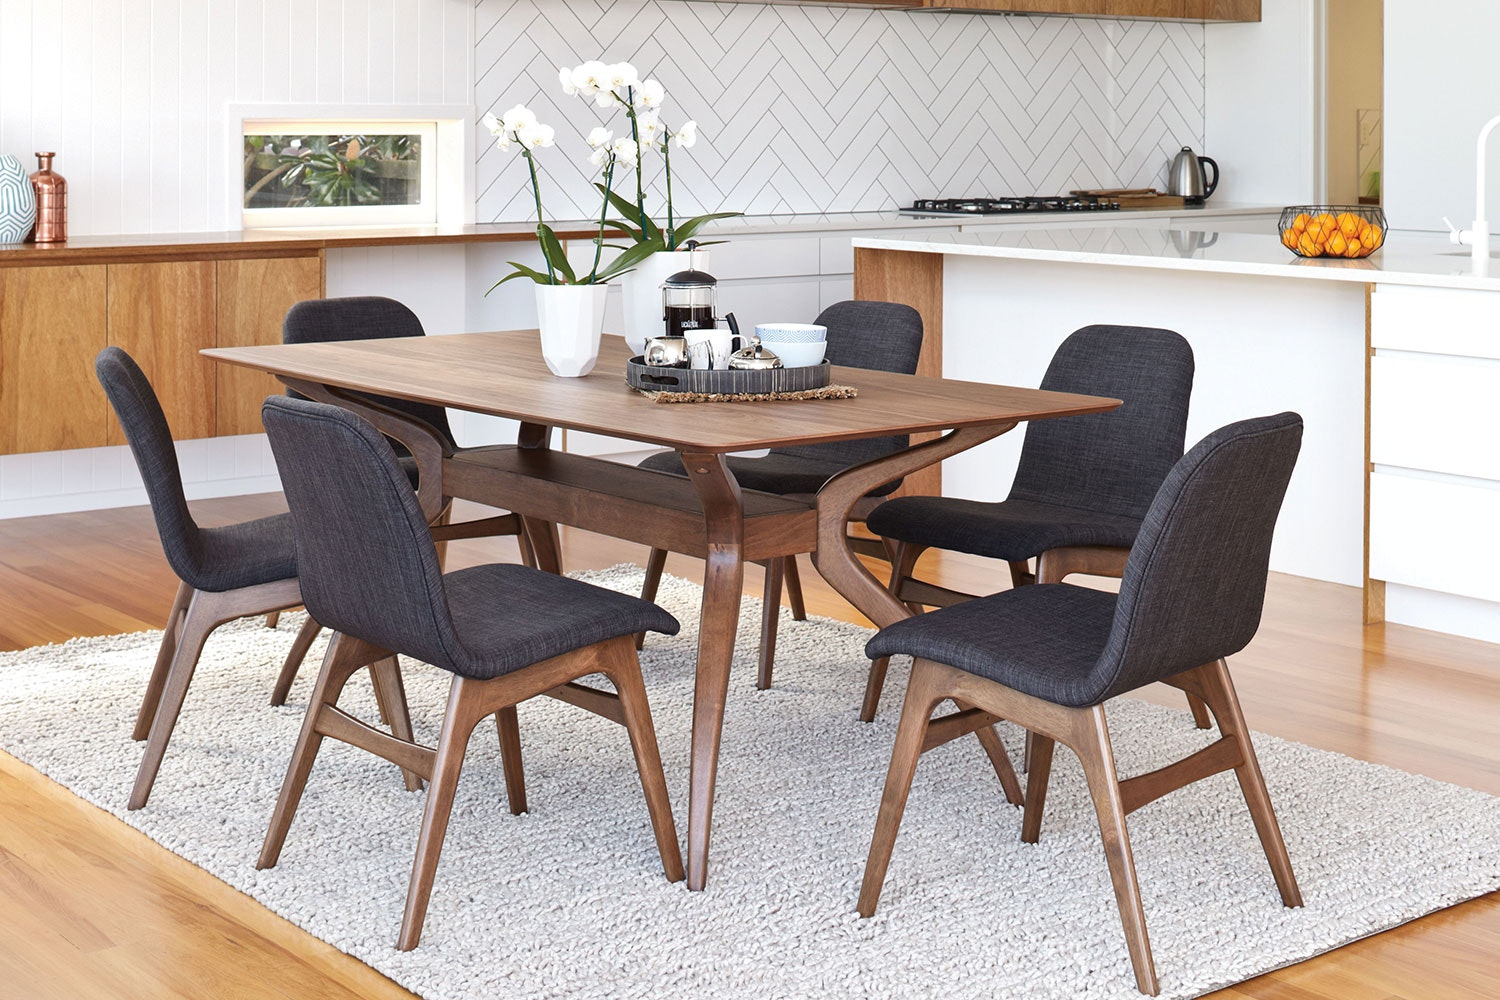 Delightful Embrace 7 Piece Wood Dining Suite By Nero Furniture ...